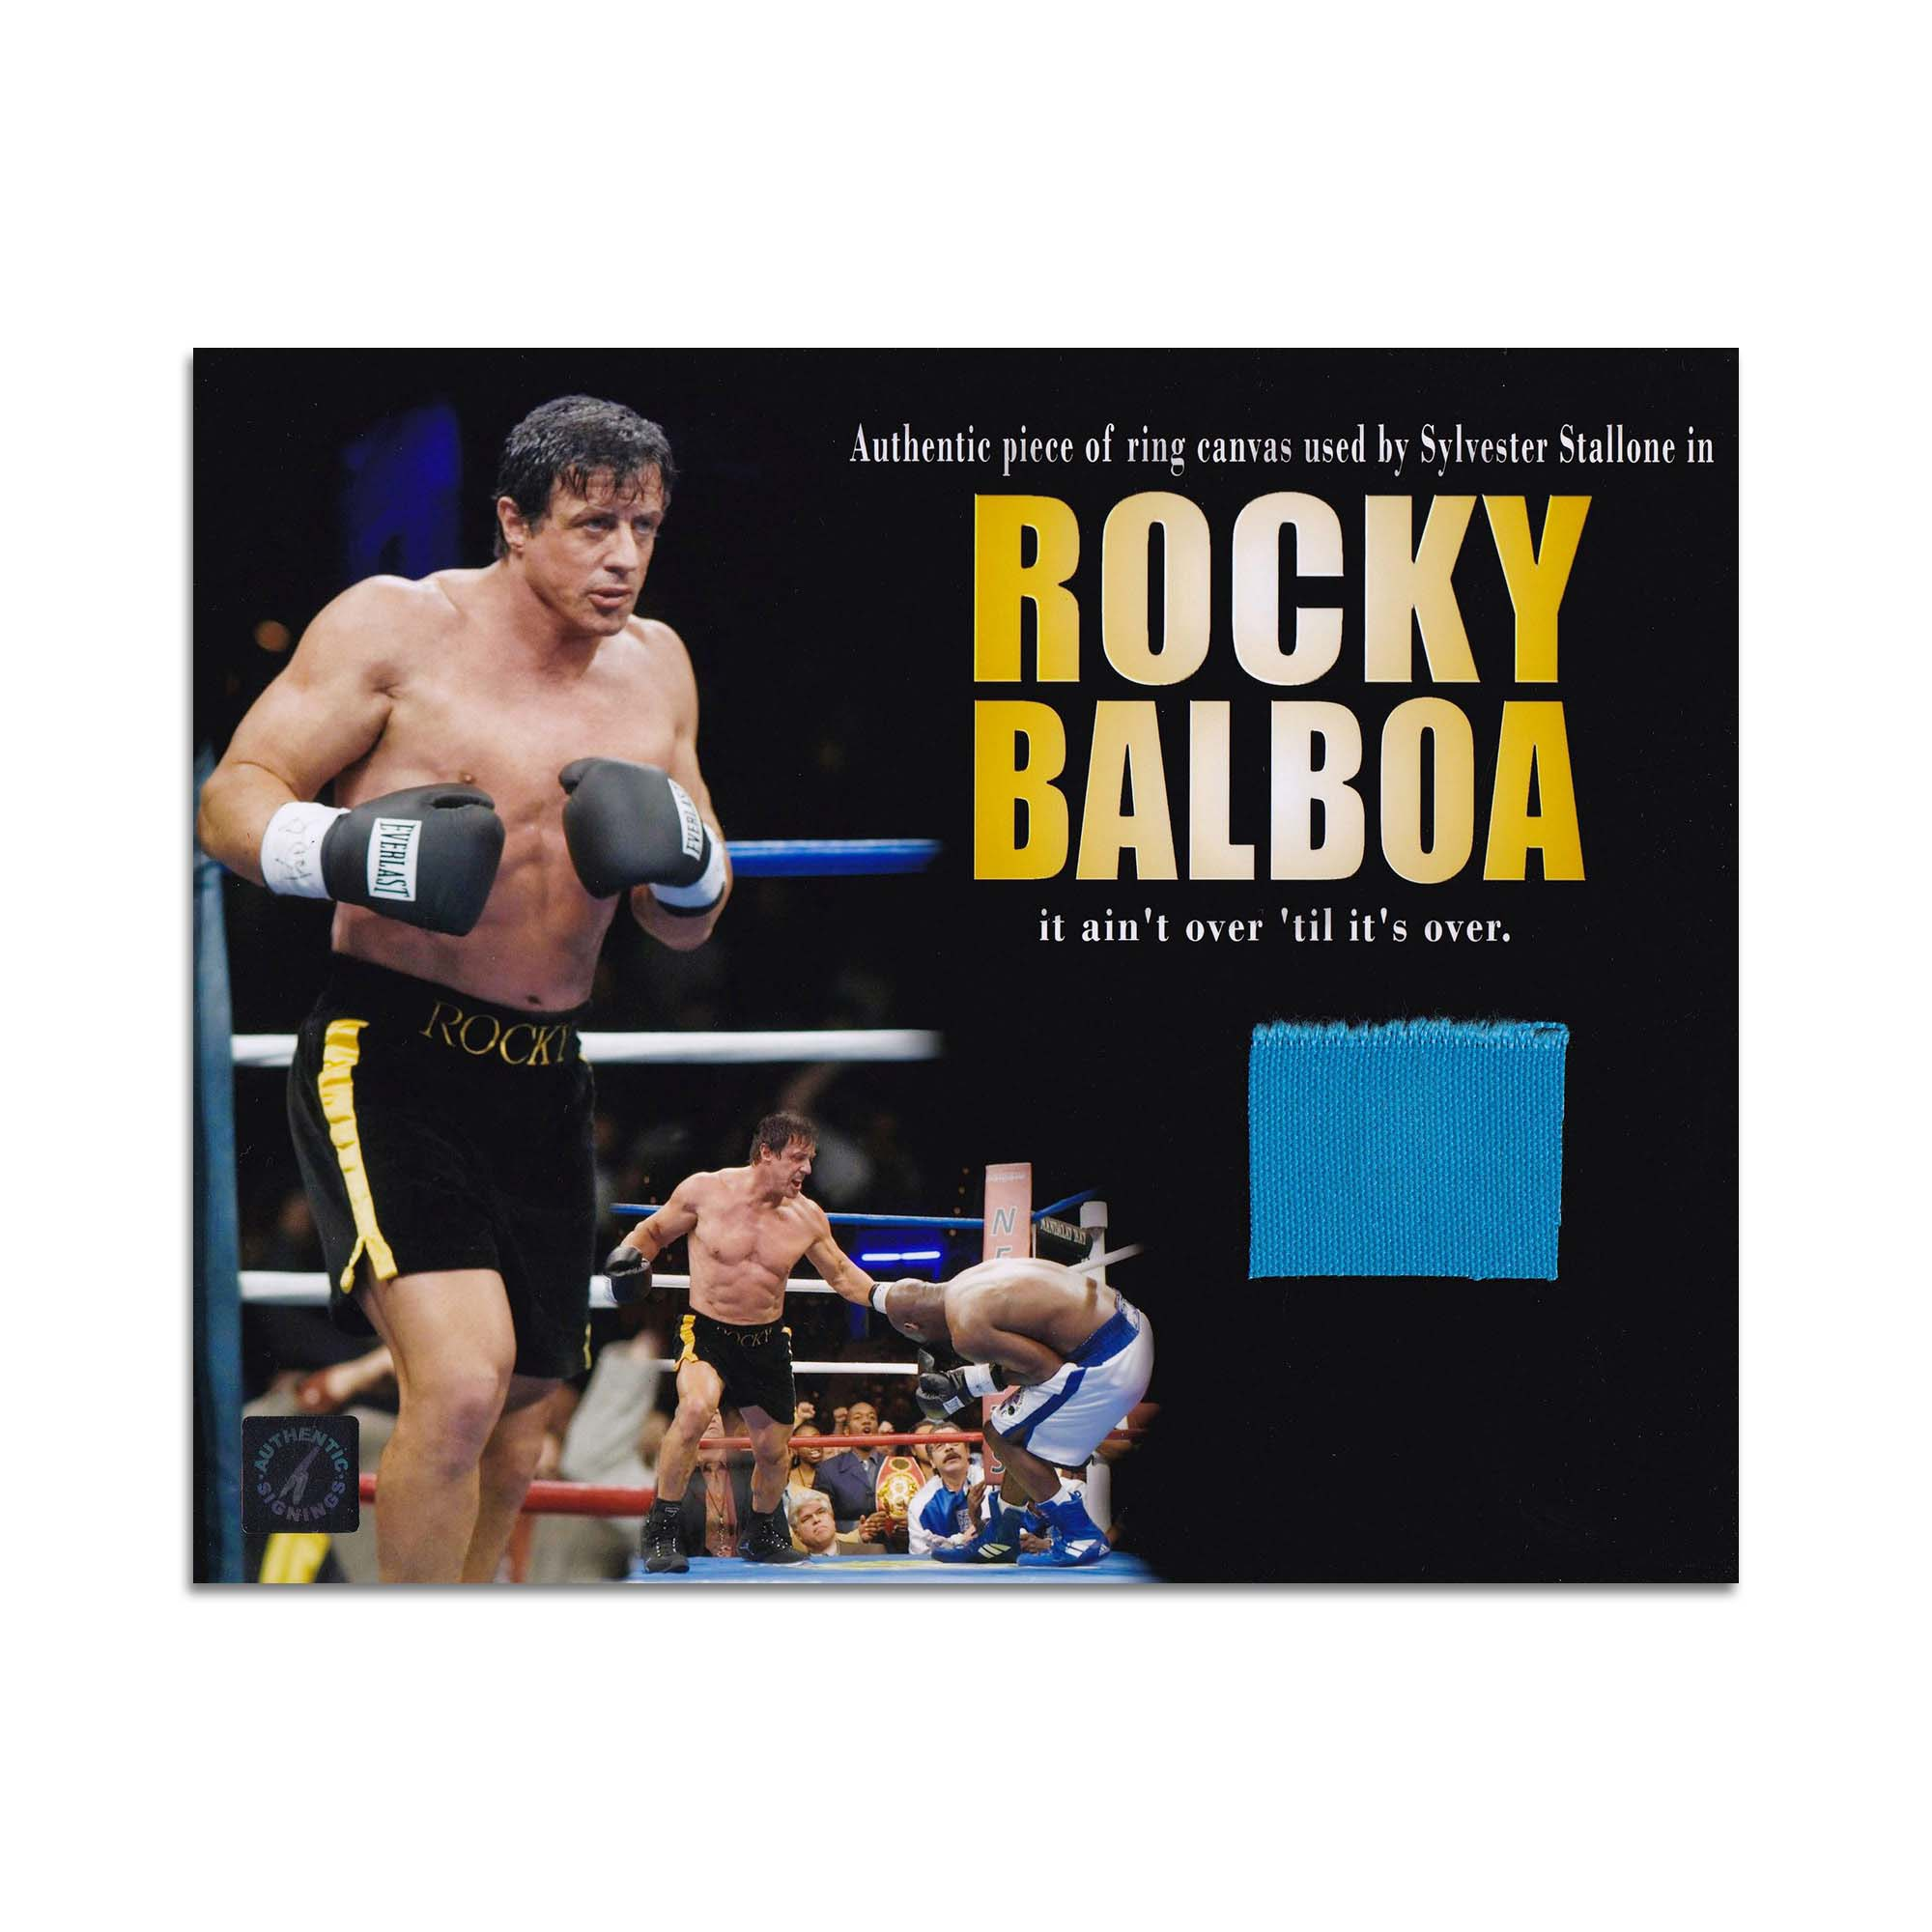 Sylvester Stallone 8 x 10 Photo With Screen Used Boxing Ring Swatch from Rocky Balboa